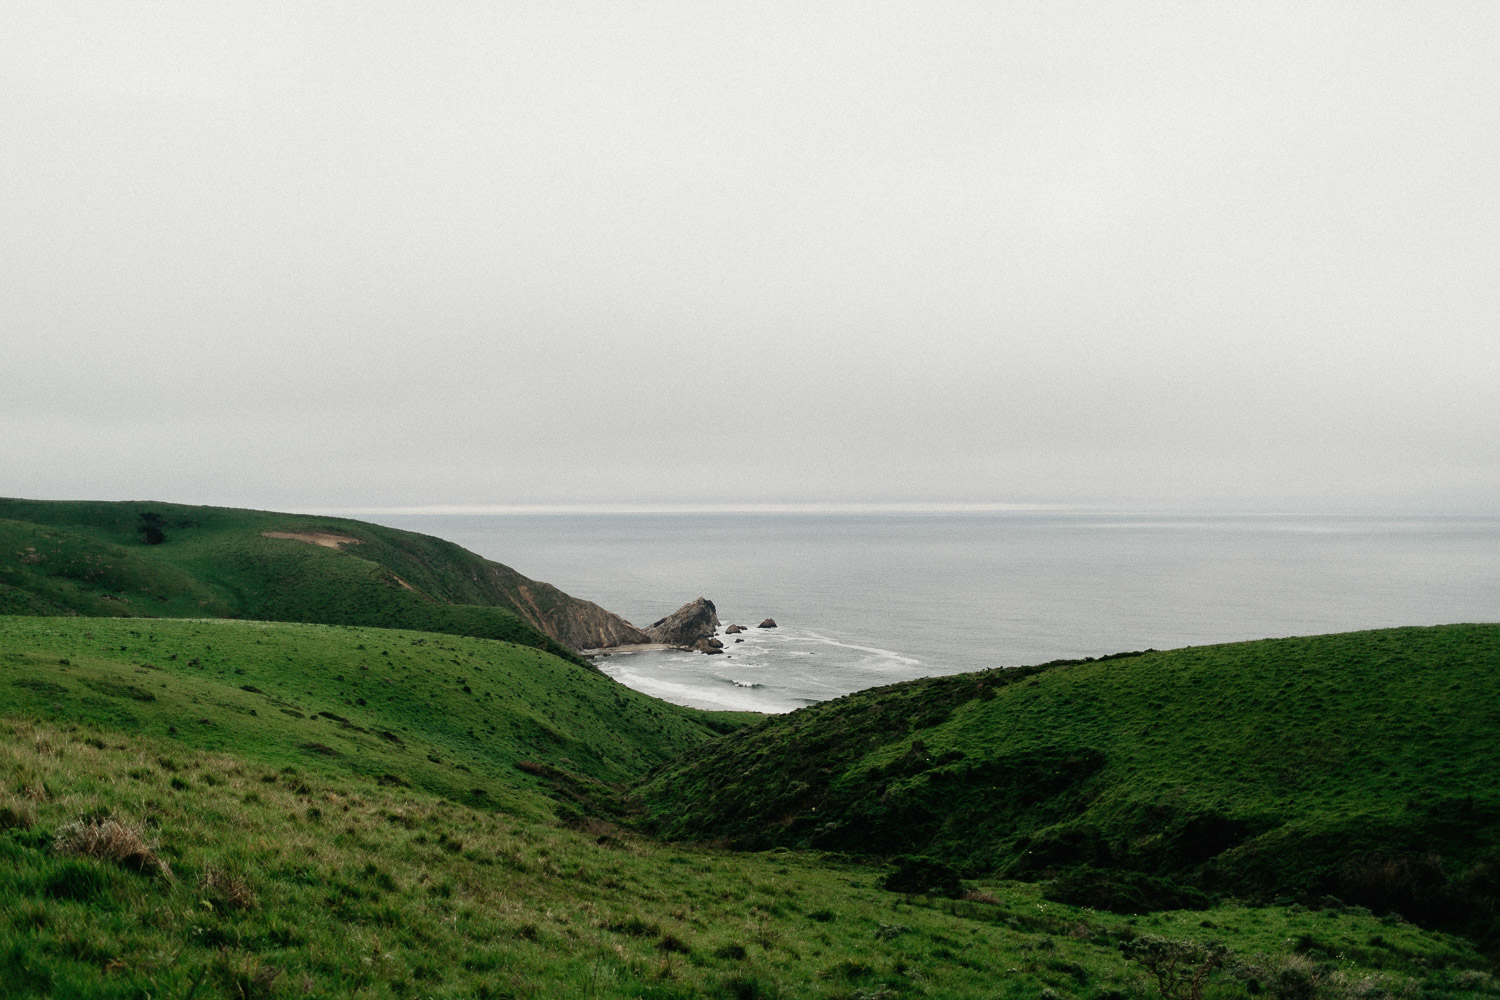 Image of green mountian next to ocean